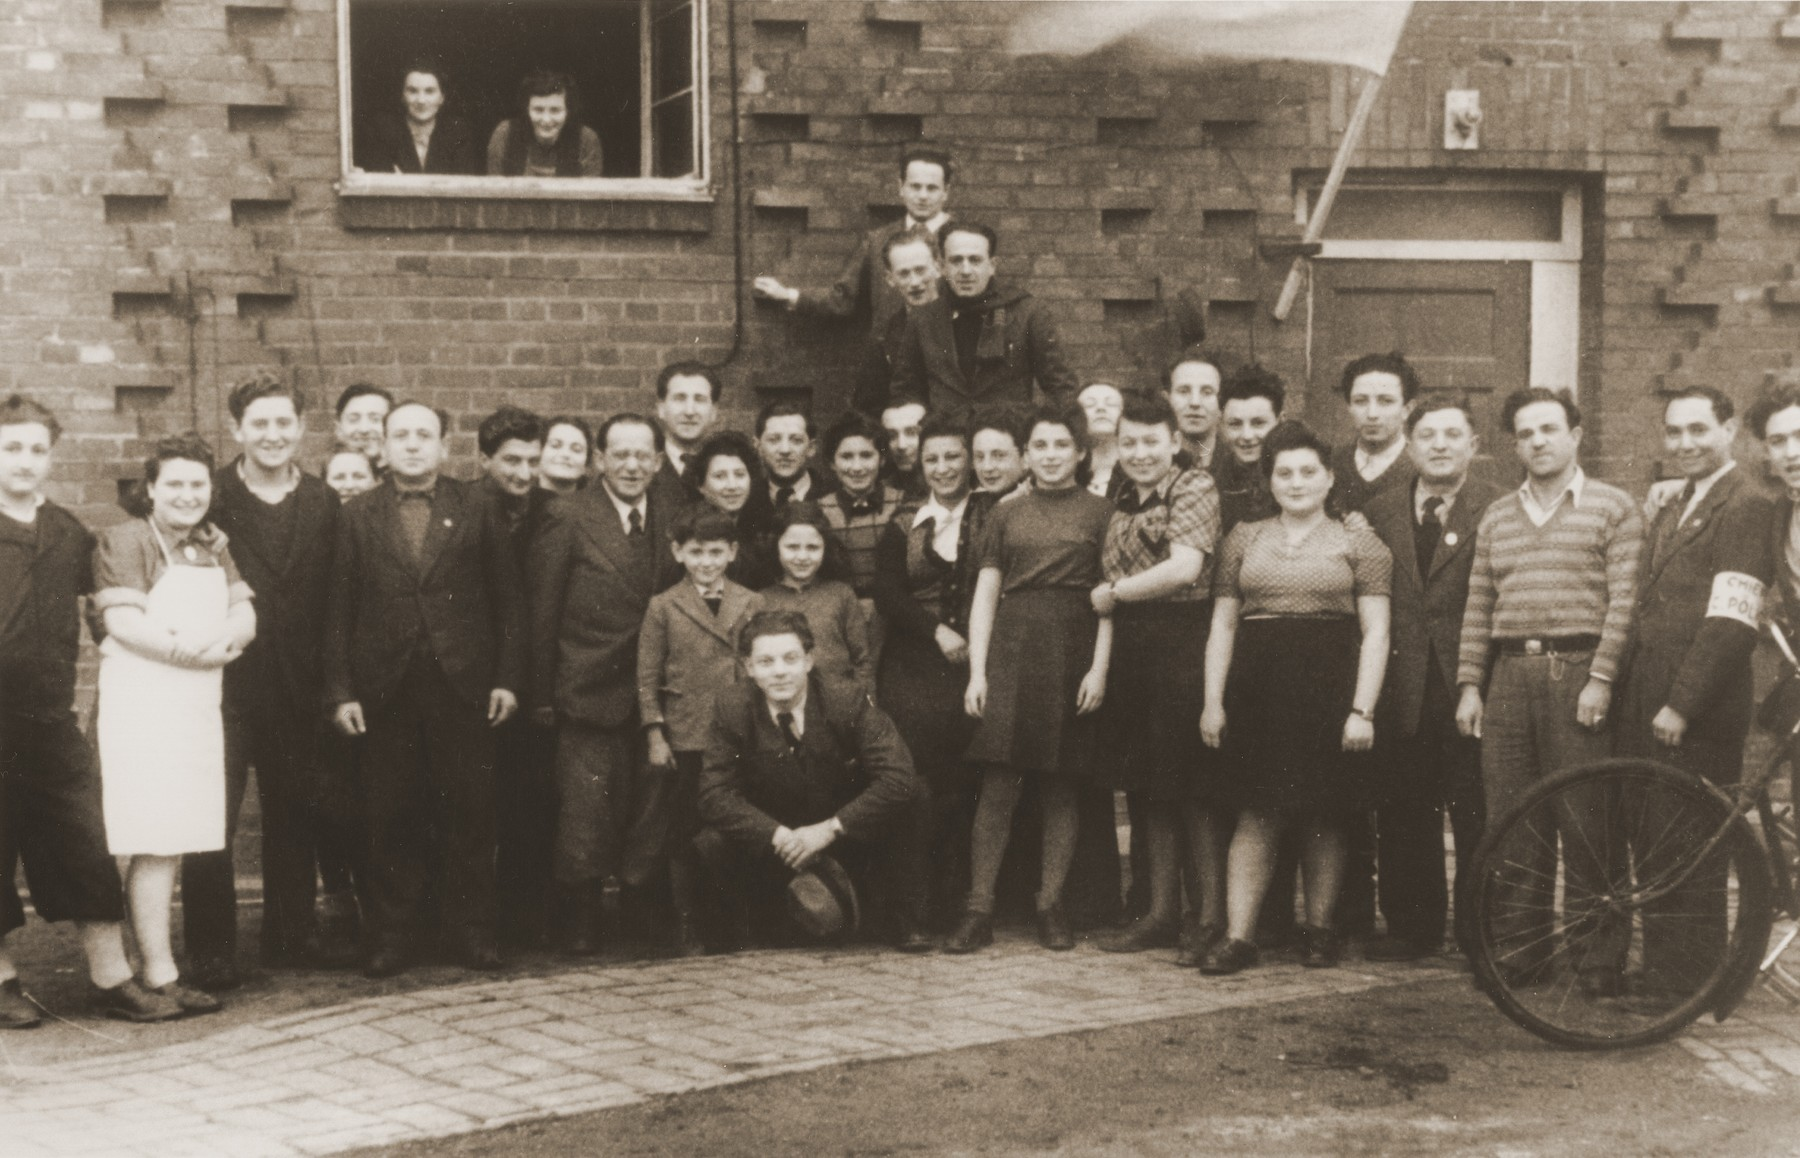 Administrative staff of the Vinnhorst displaced person's center.  Among those pictured is Jacob Stefan Rue, squatting in the center of the group.  Also pictured is Henryk Arfa, the second person (tall male) to the left of the door.